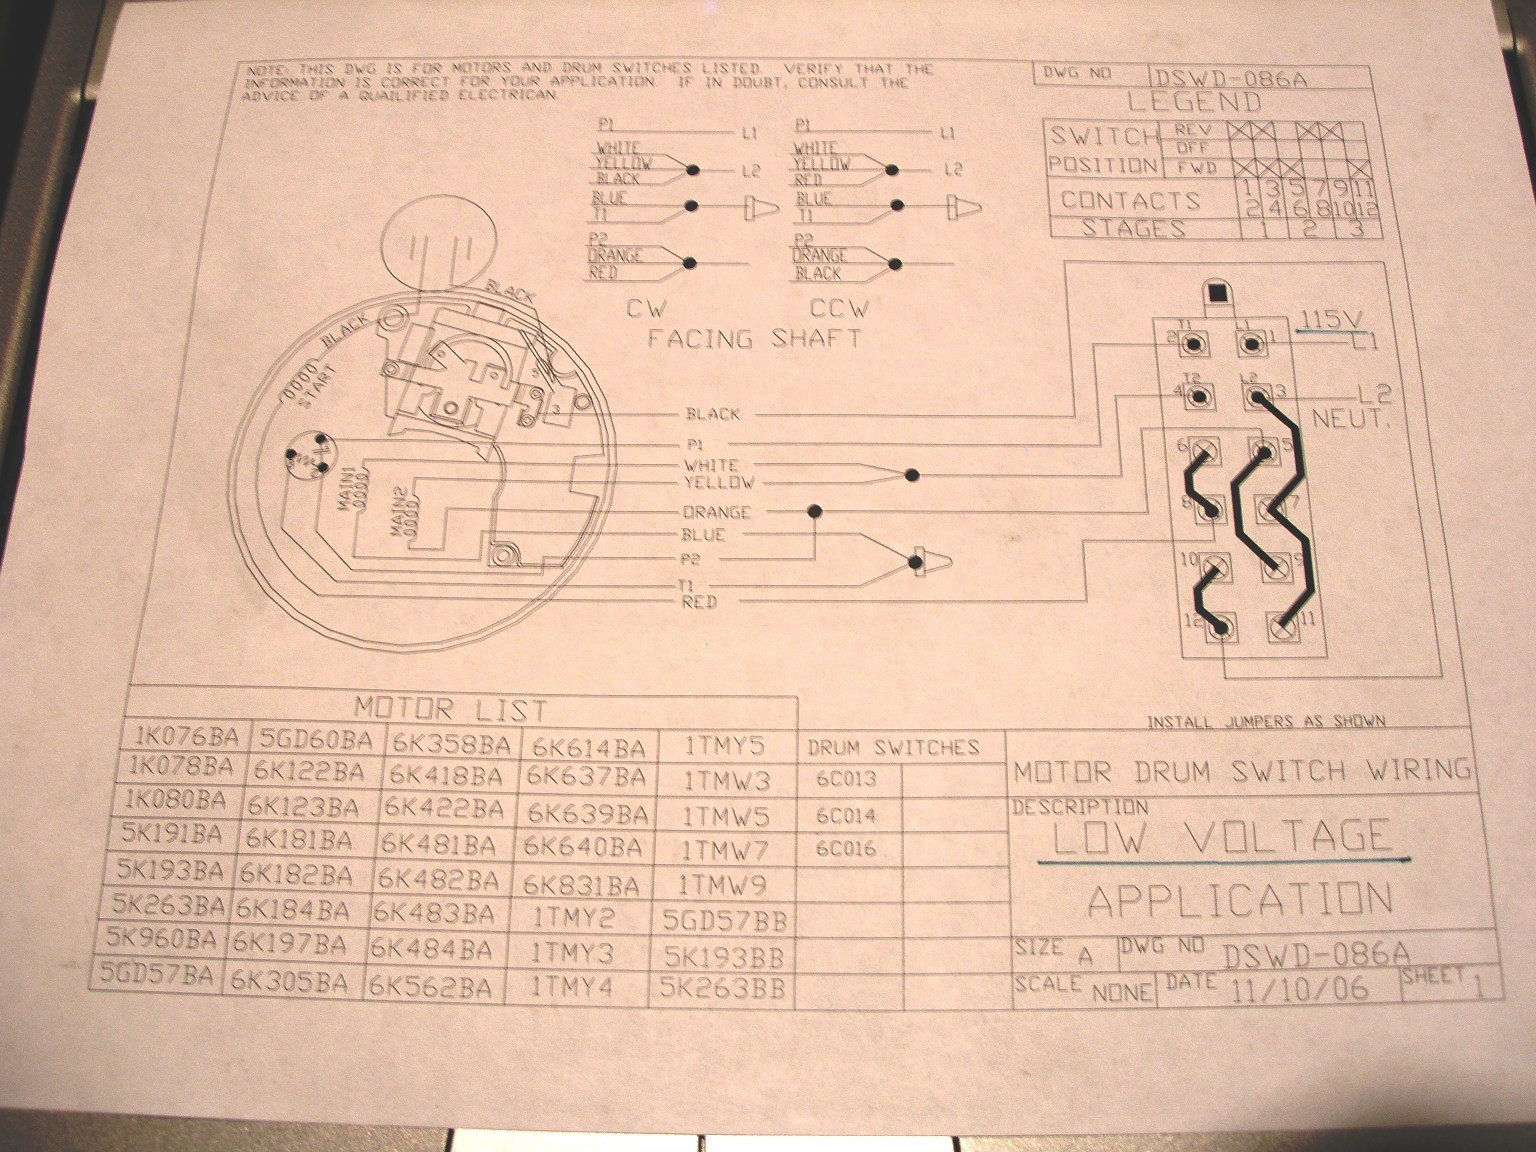 2011 08 11_192911_grainger_dayton_low_voltage_diagram the motor on my boat lift quit it was a ao motor, open ended and boat hoist usa wiring diagrams at soozxer.org